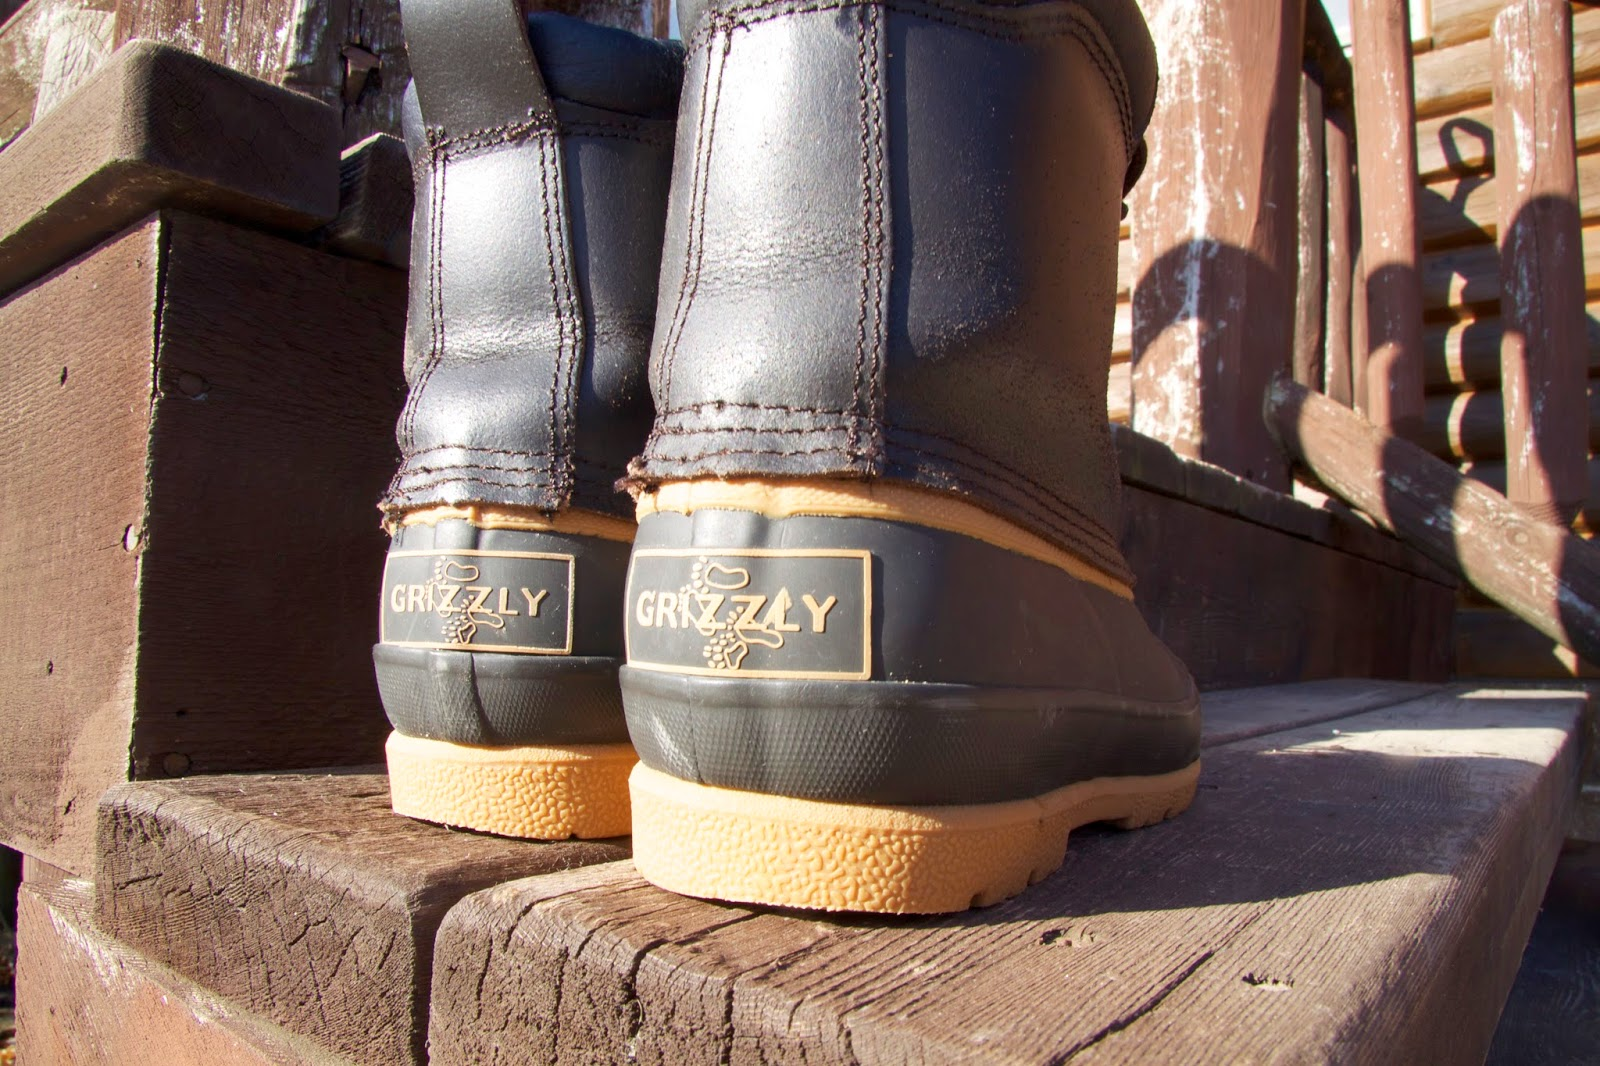 A pair of Grizzly Therolite Winter Boots found while second hand shopping